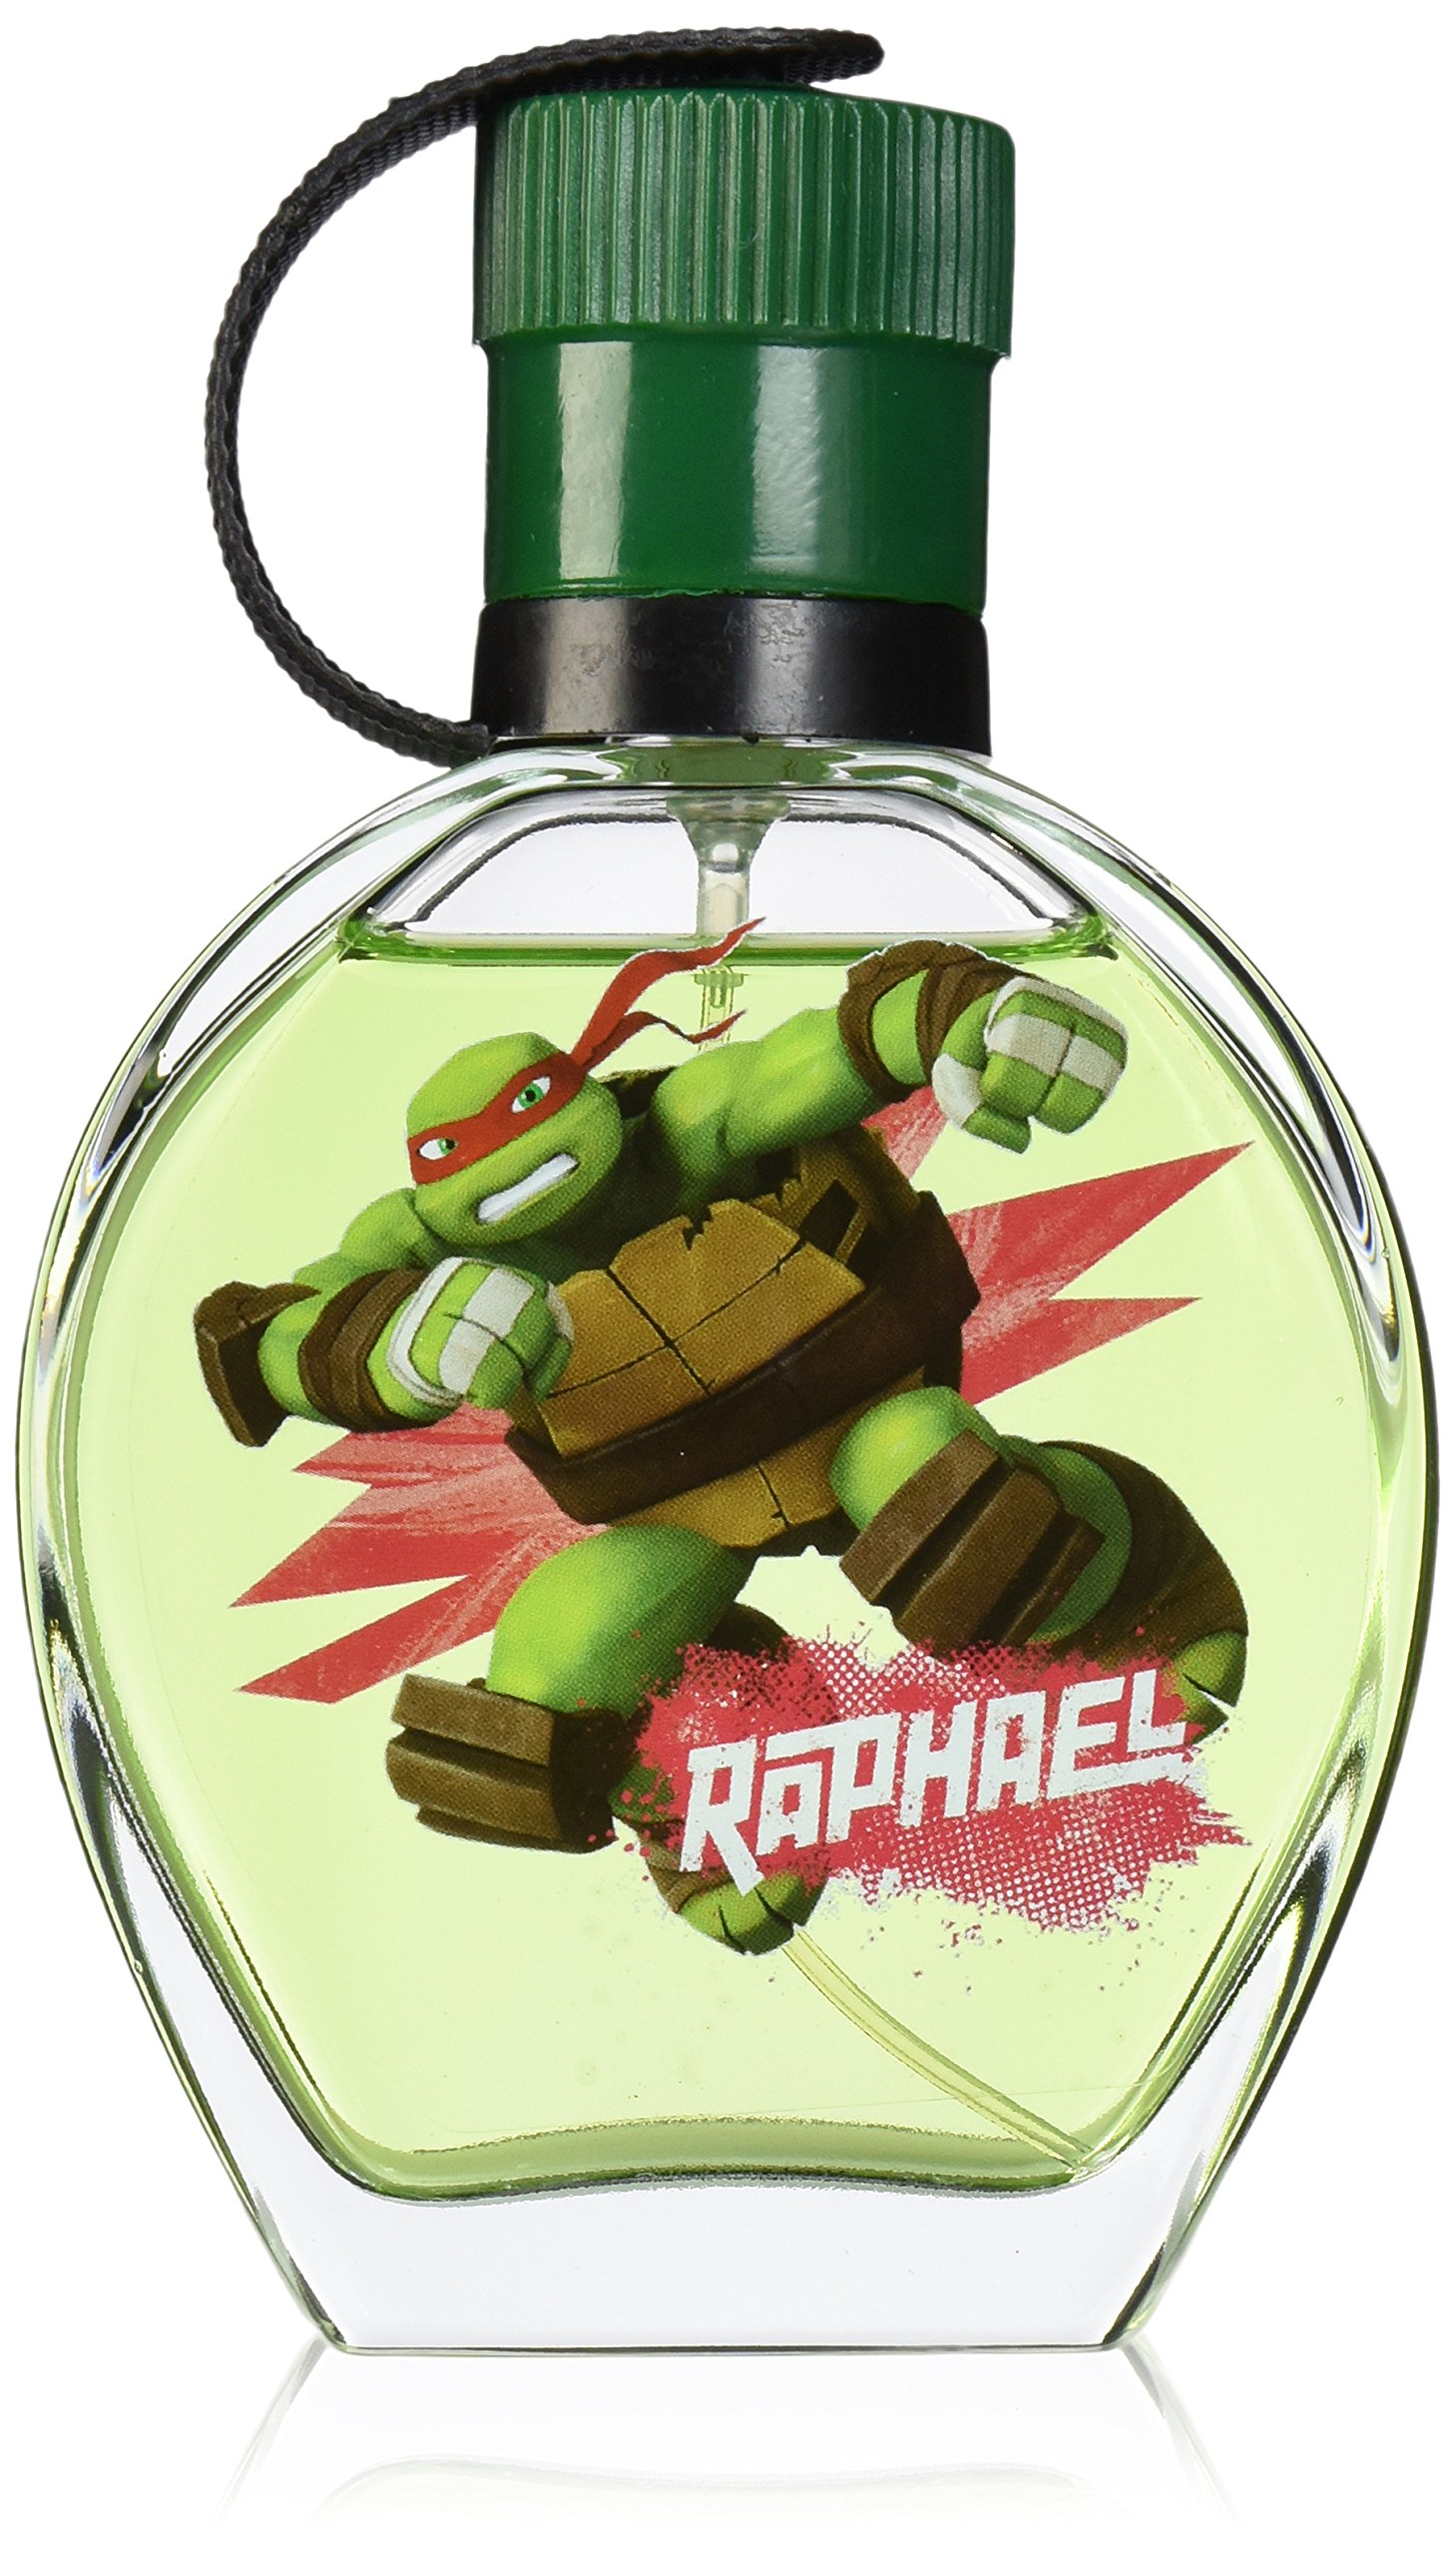 Teenage Mutant Ninja Turtles Raphael by Nickelodeon for Kids - 3.4 oz EDT Spray